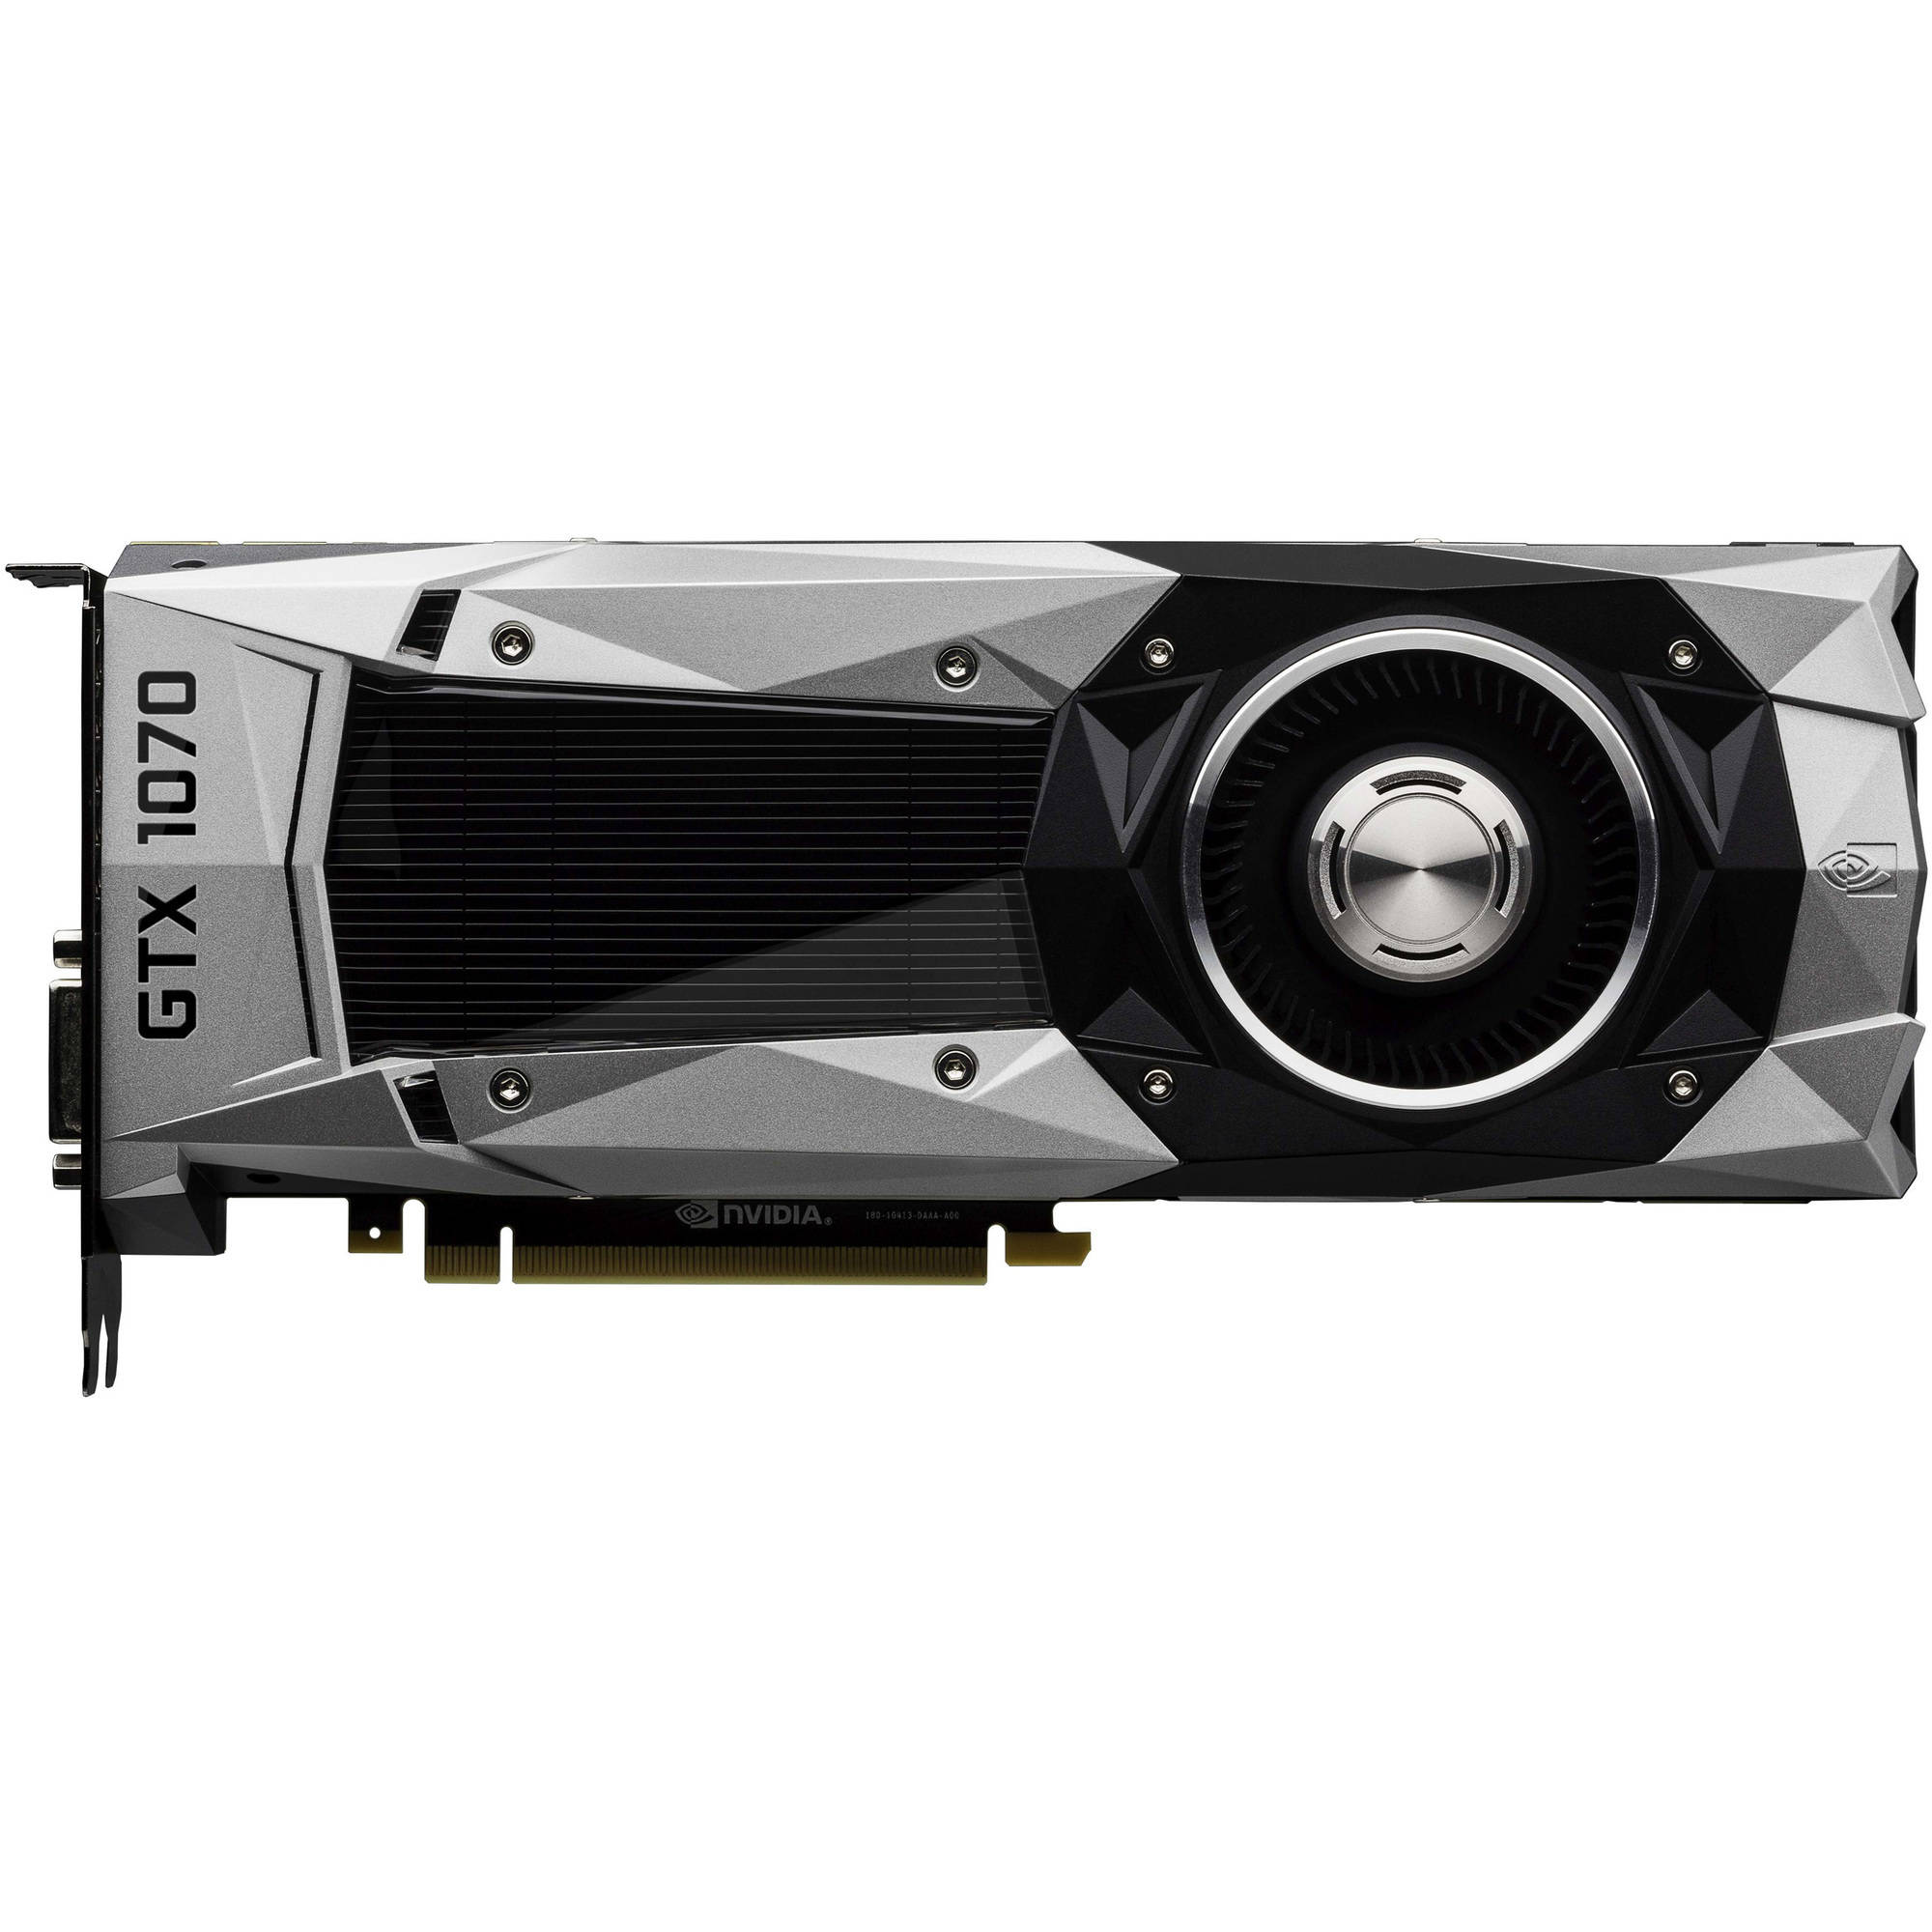 NVIDIA GeForce GTX 1070 8GB Graphics Card and 700W Power Supply